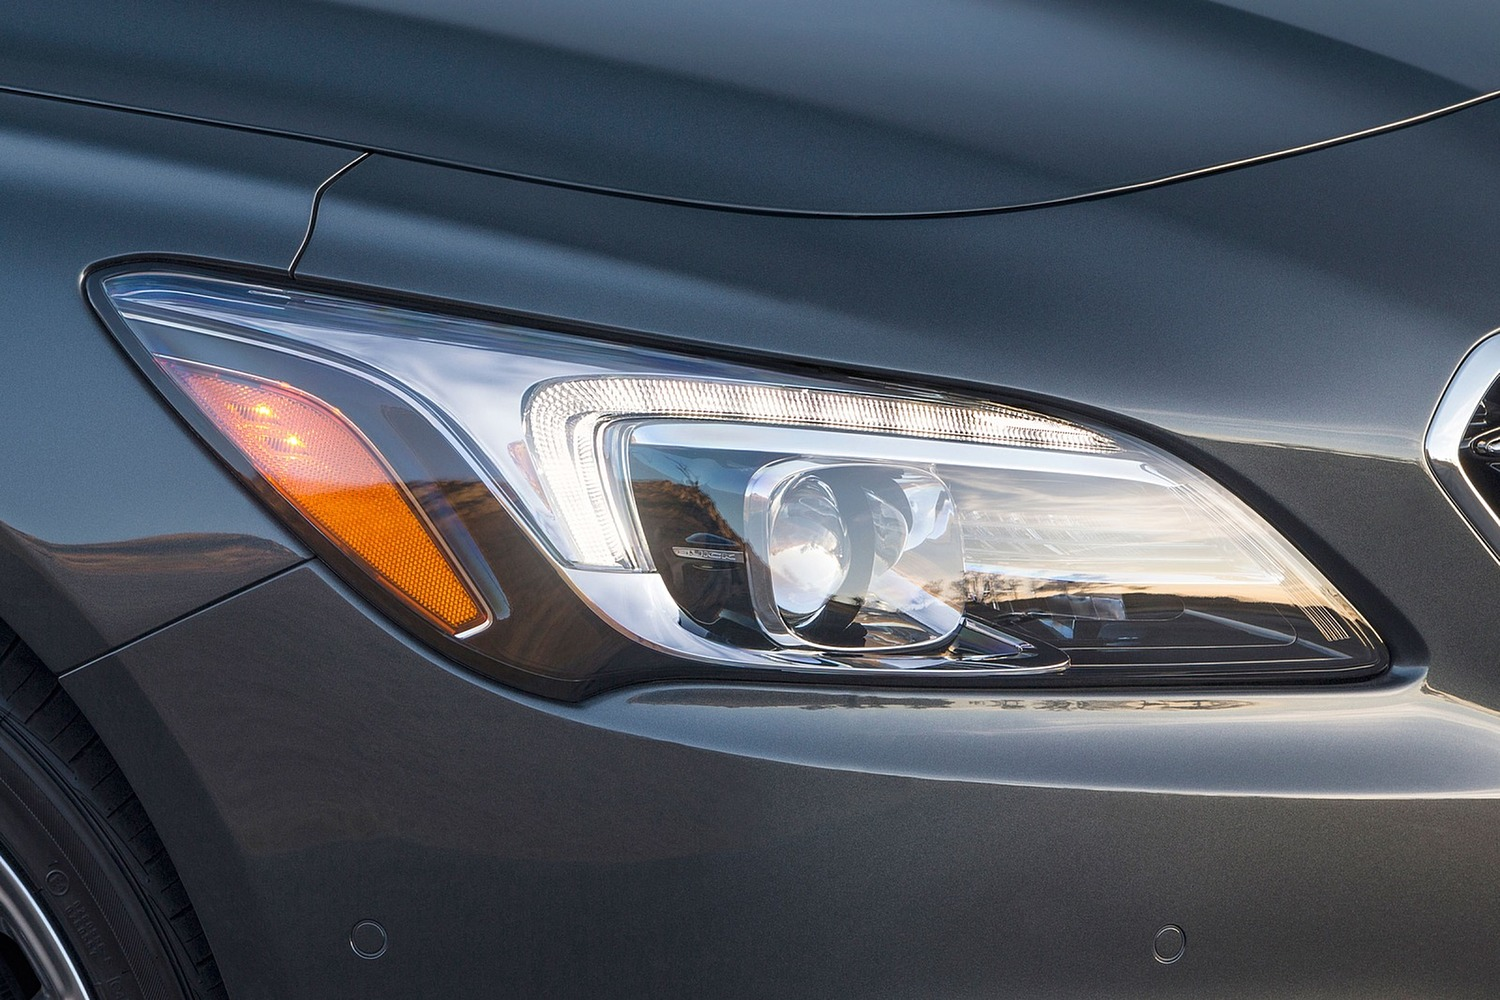 Buick LaCrosse Premium Sedan Headlamp Detail (2017 model year shown)